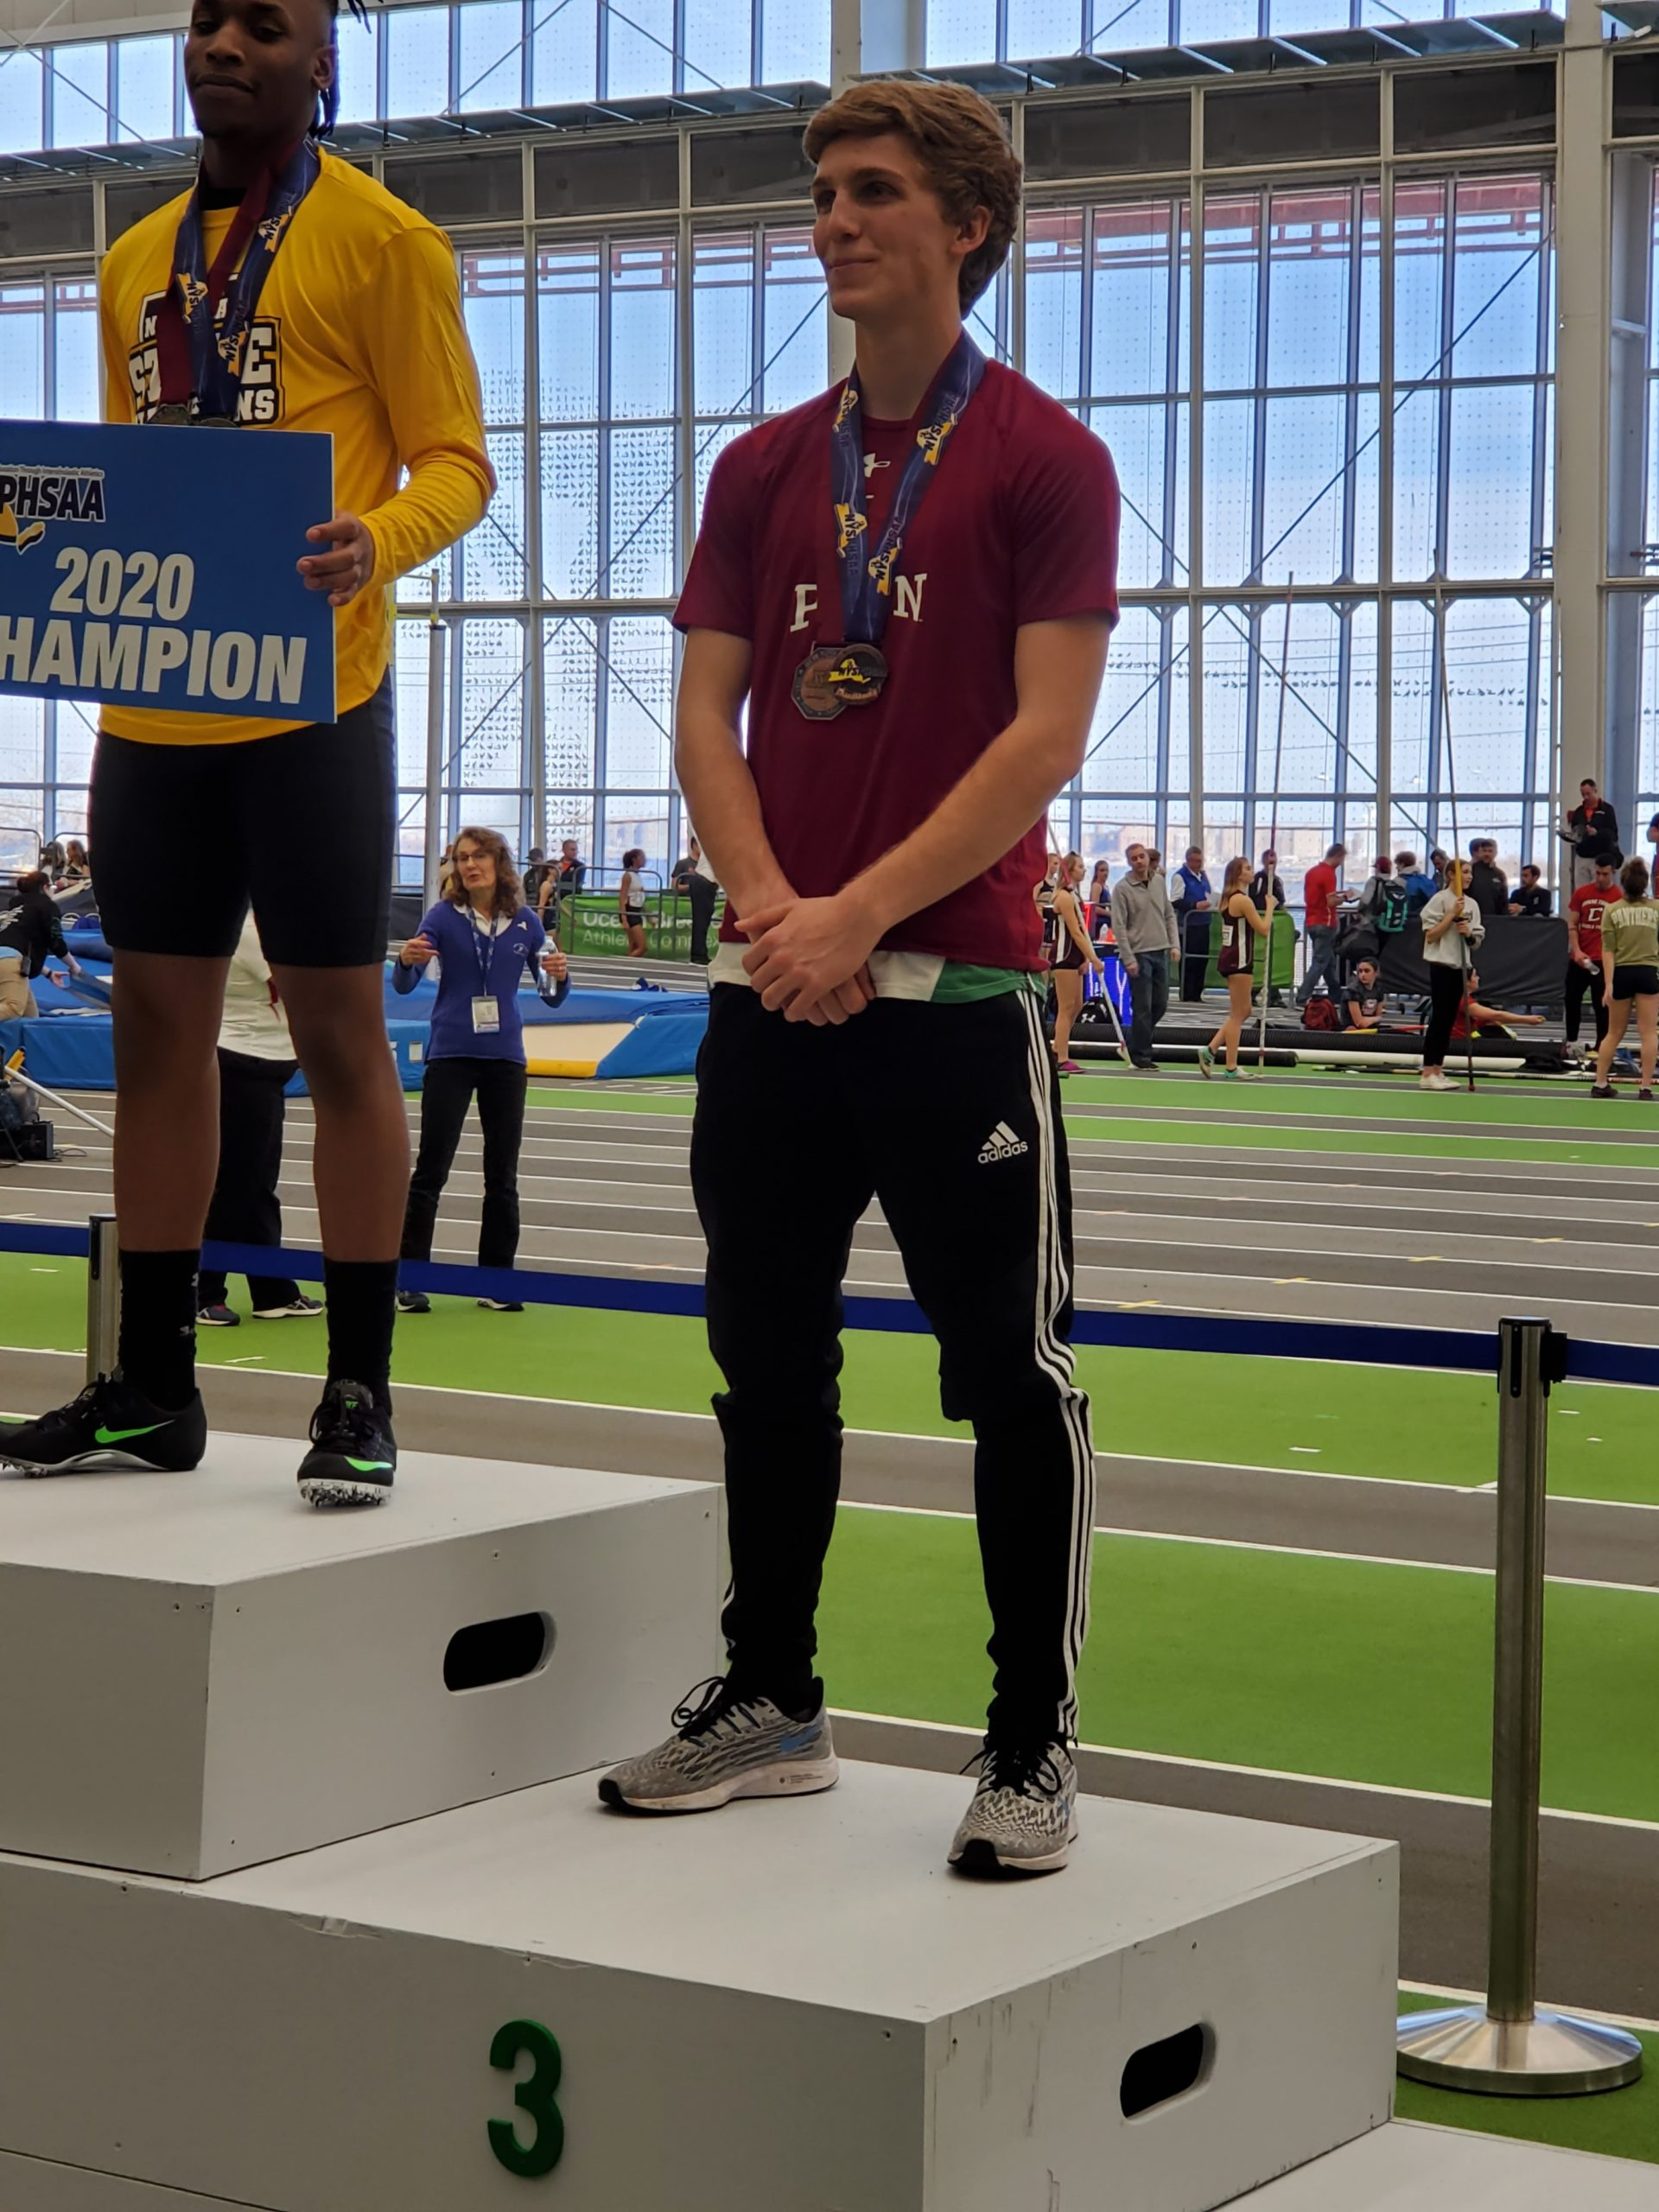 Westhampton Beach senior Jack Meigel earned a pair of bronze medals for placing third in the state in the high jump.